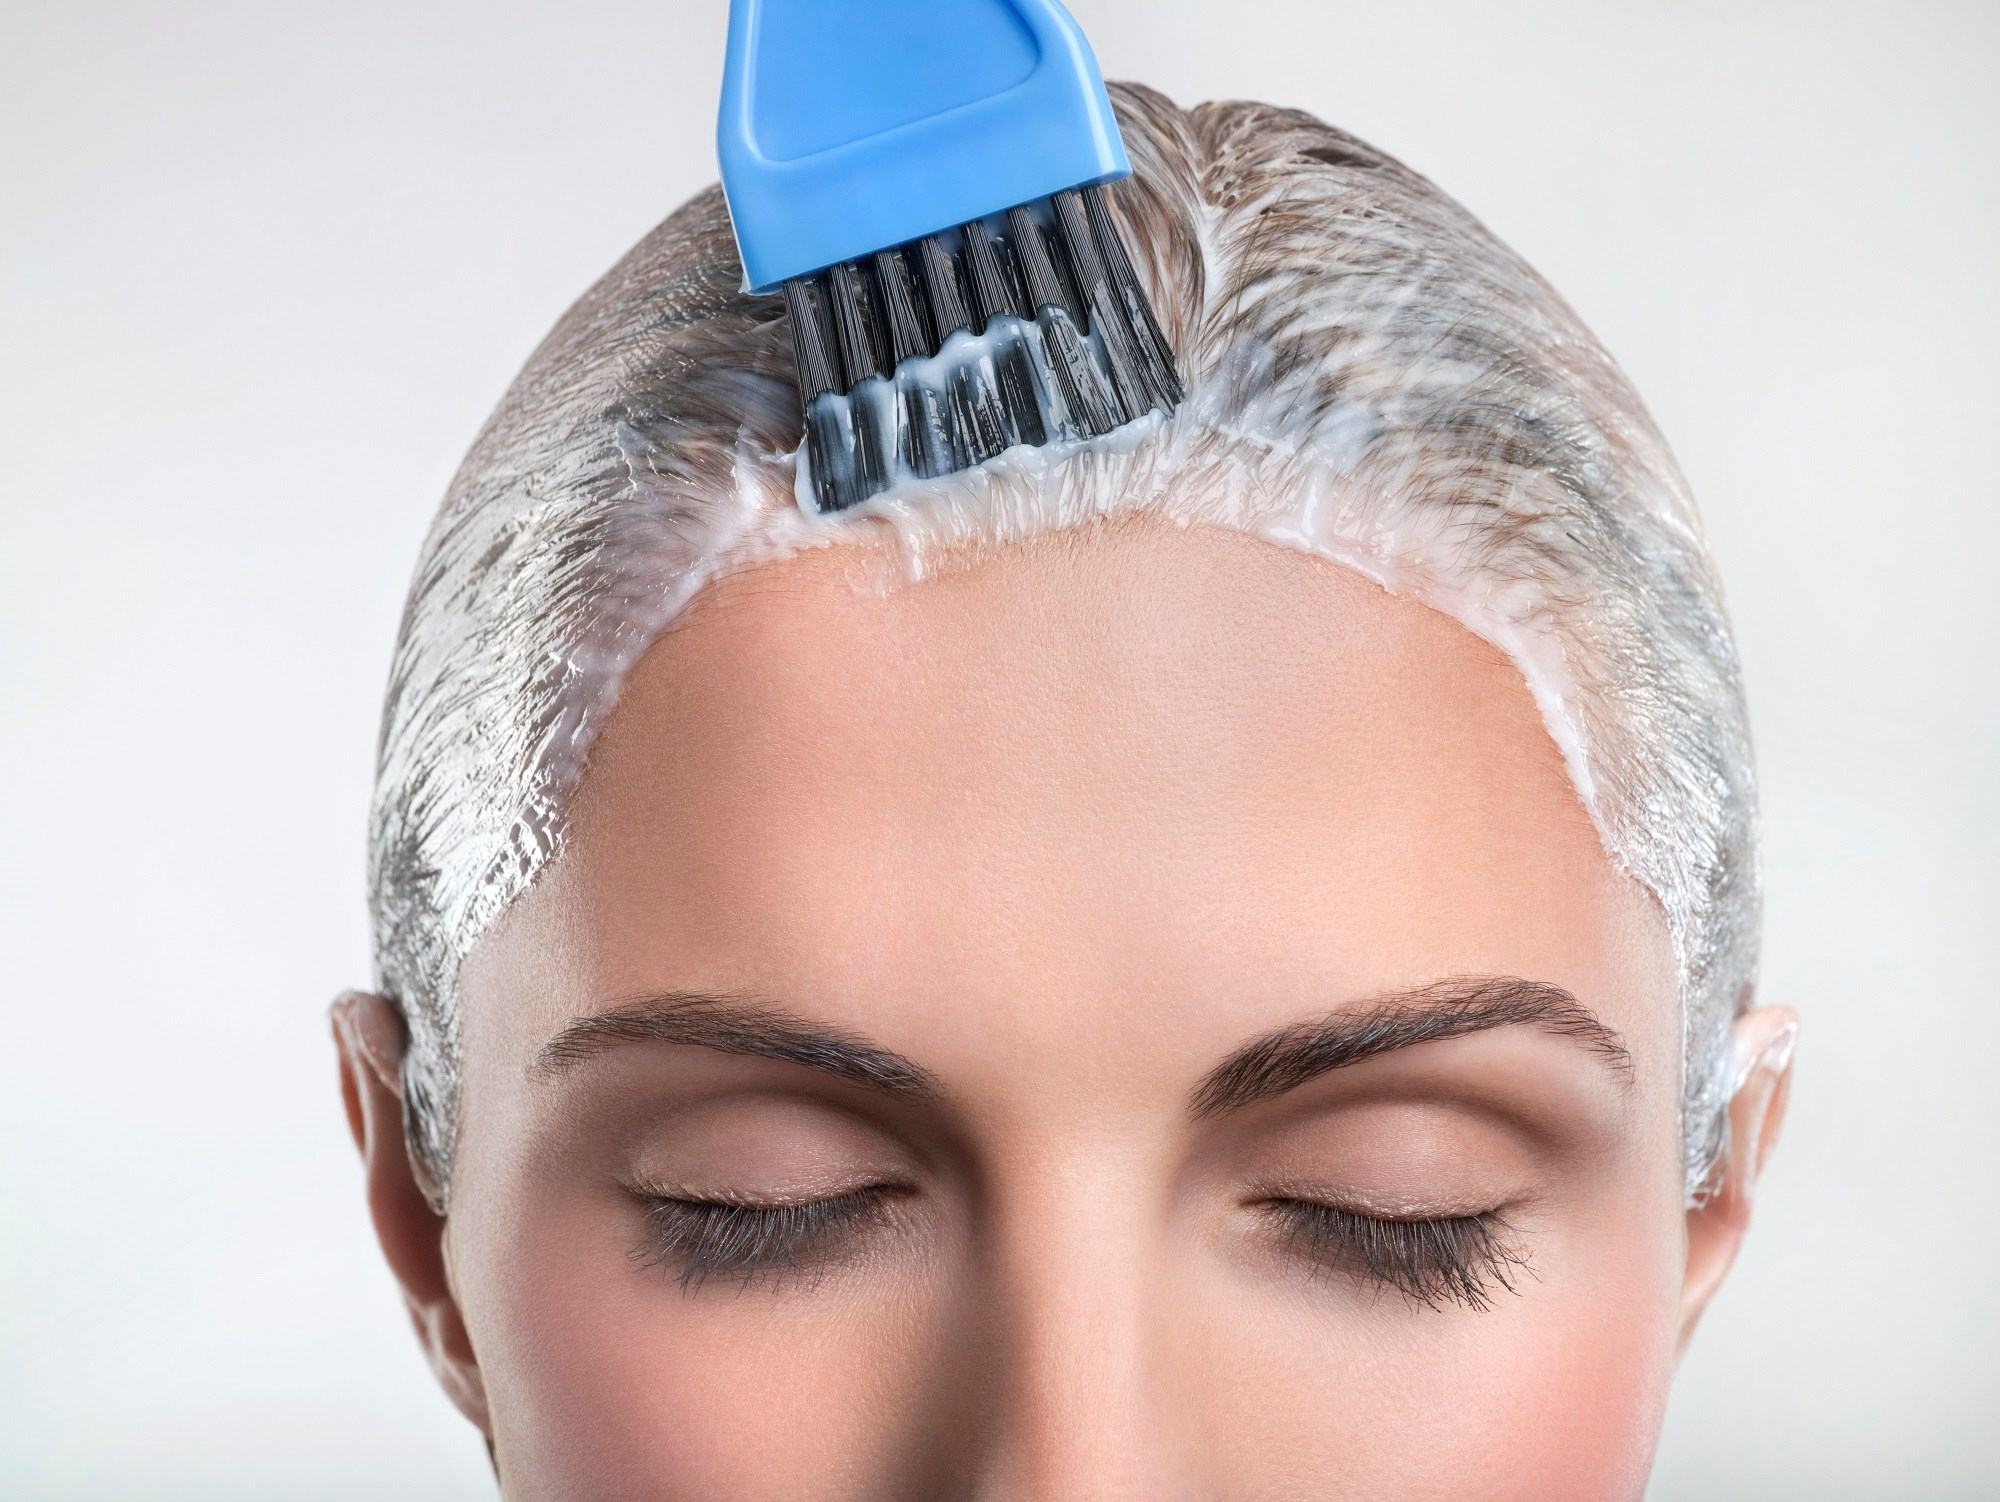 The available data on the dangers of lead acetate do not support its continued use as a color additive in cosmetics to be used on the scalp.